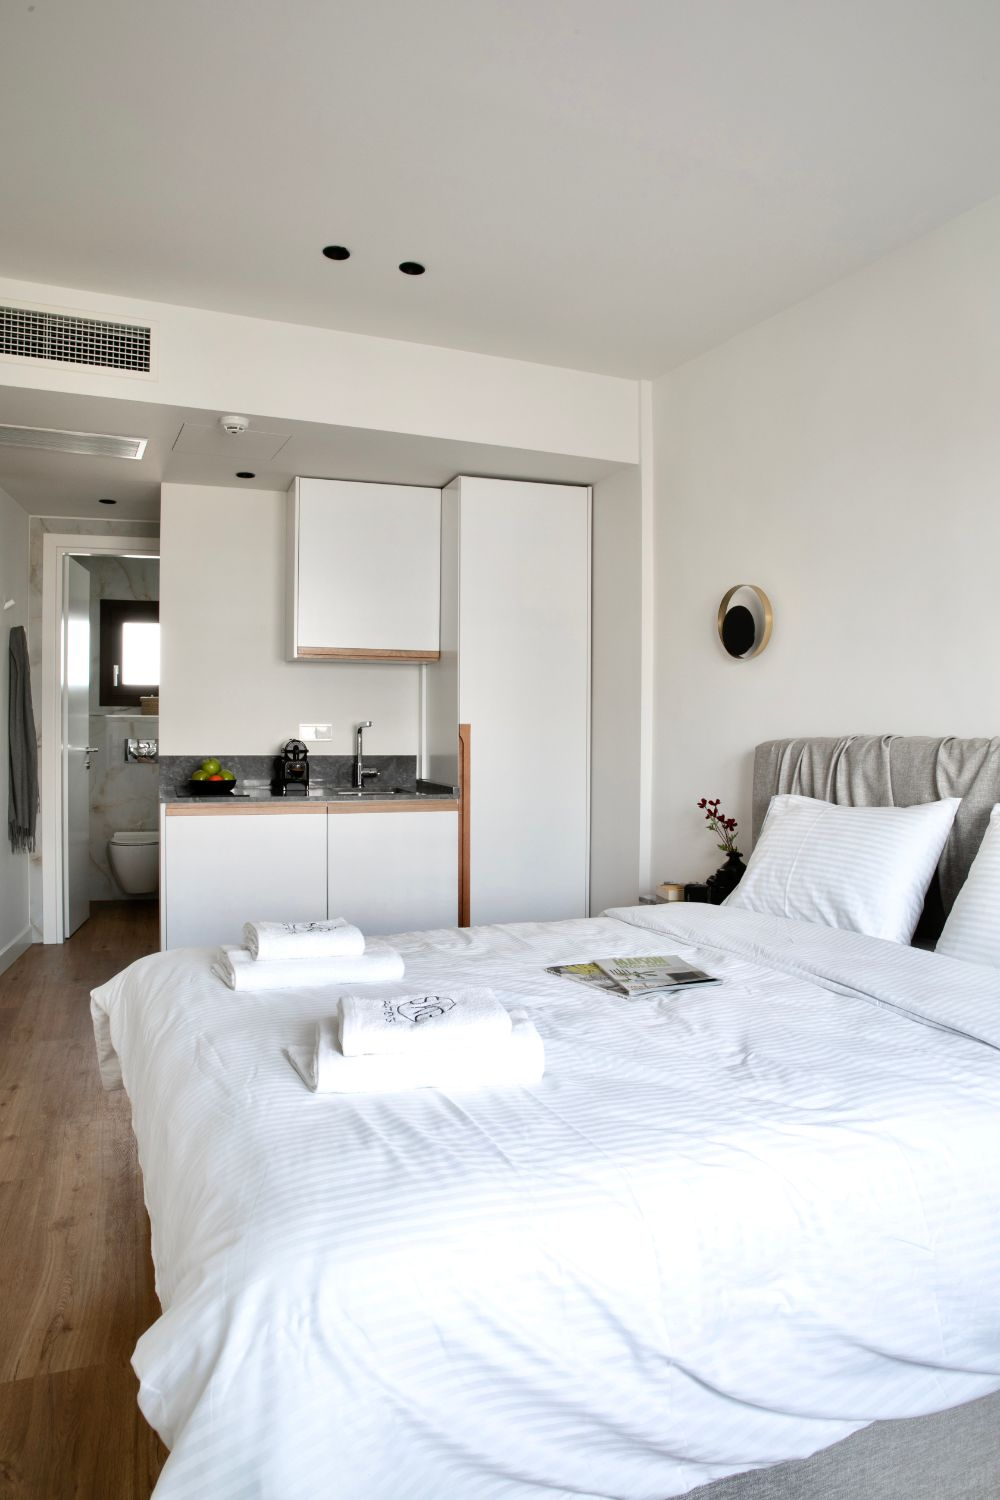 #701 Bedroom with Double Bed